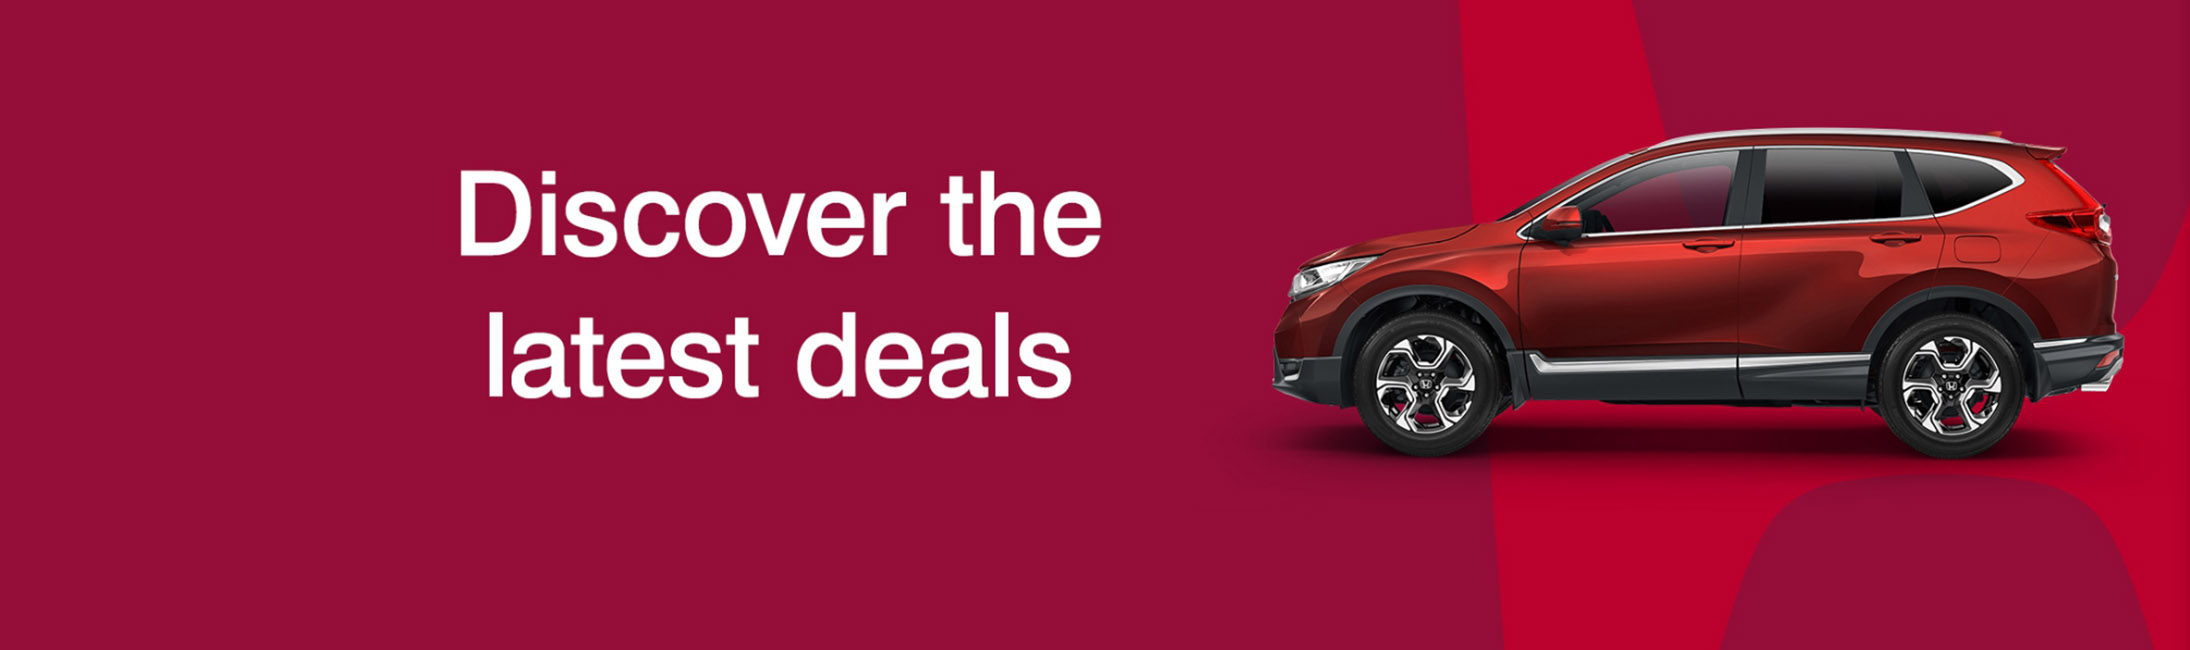 Discover Latest Deals - Honda